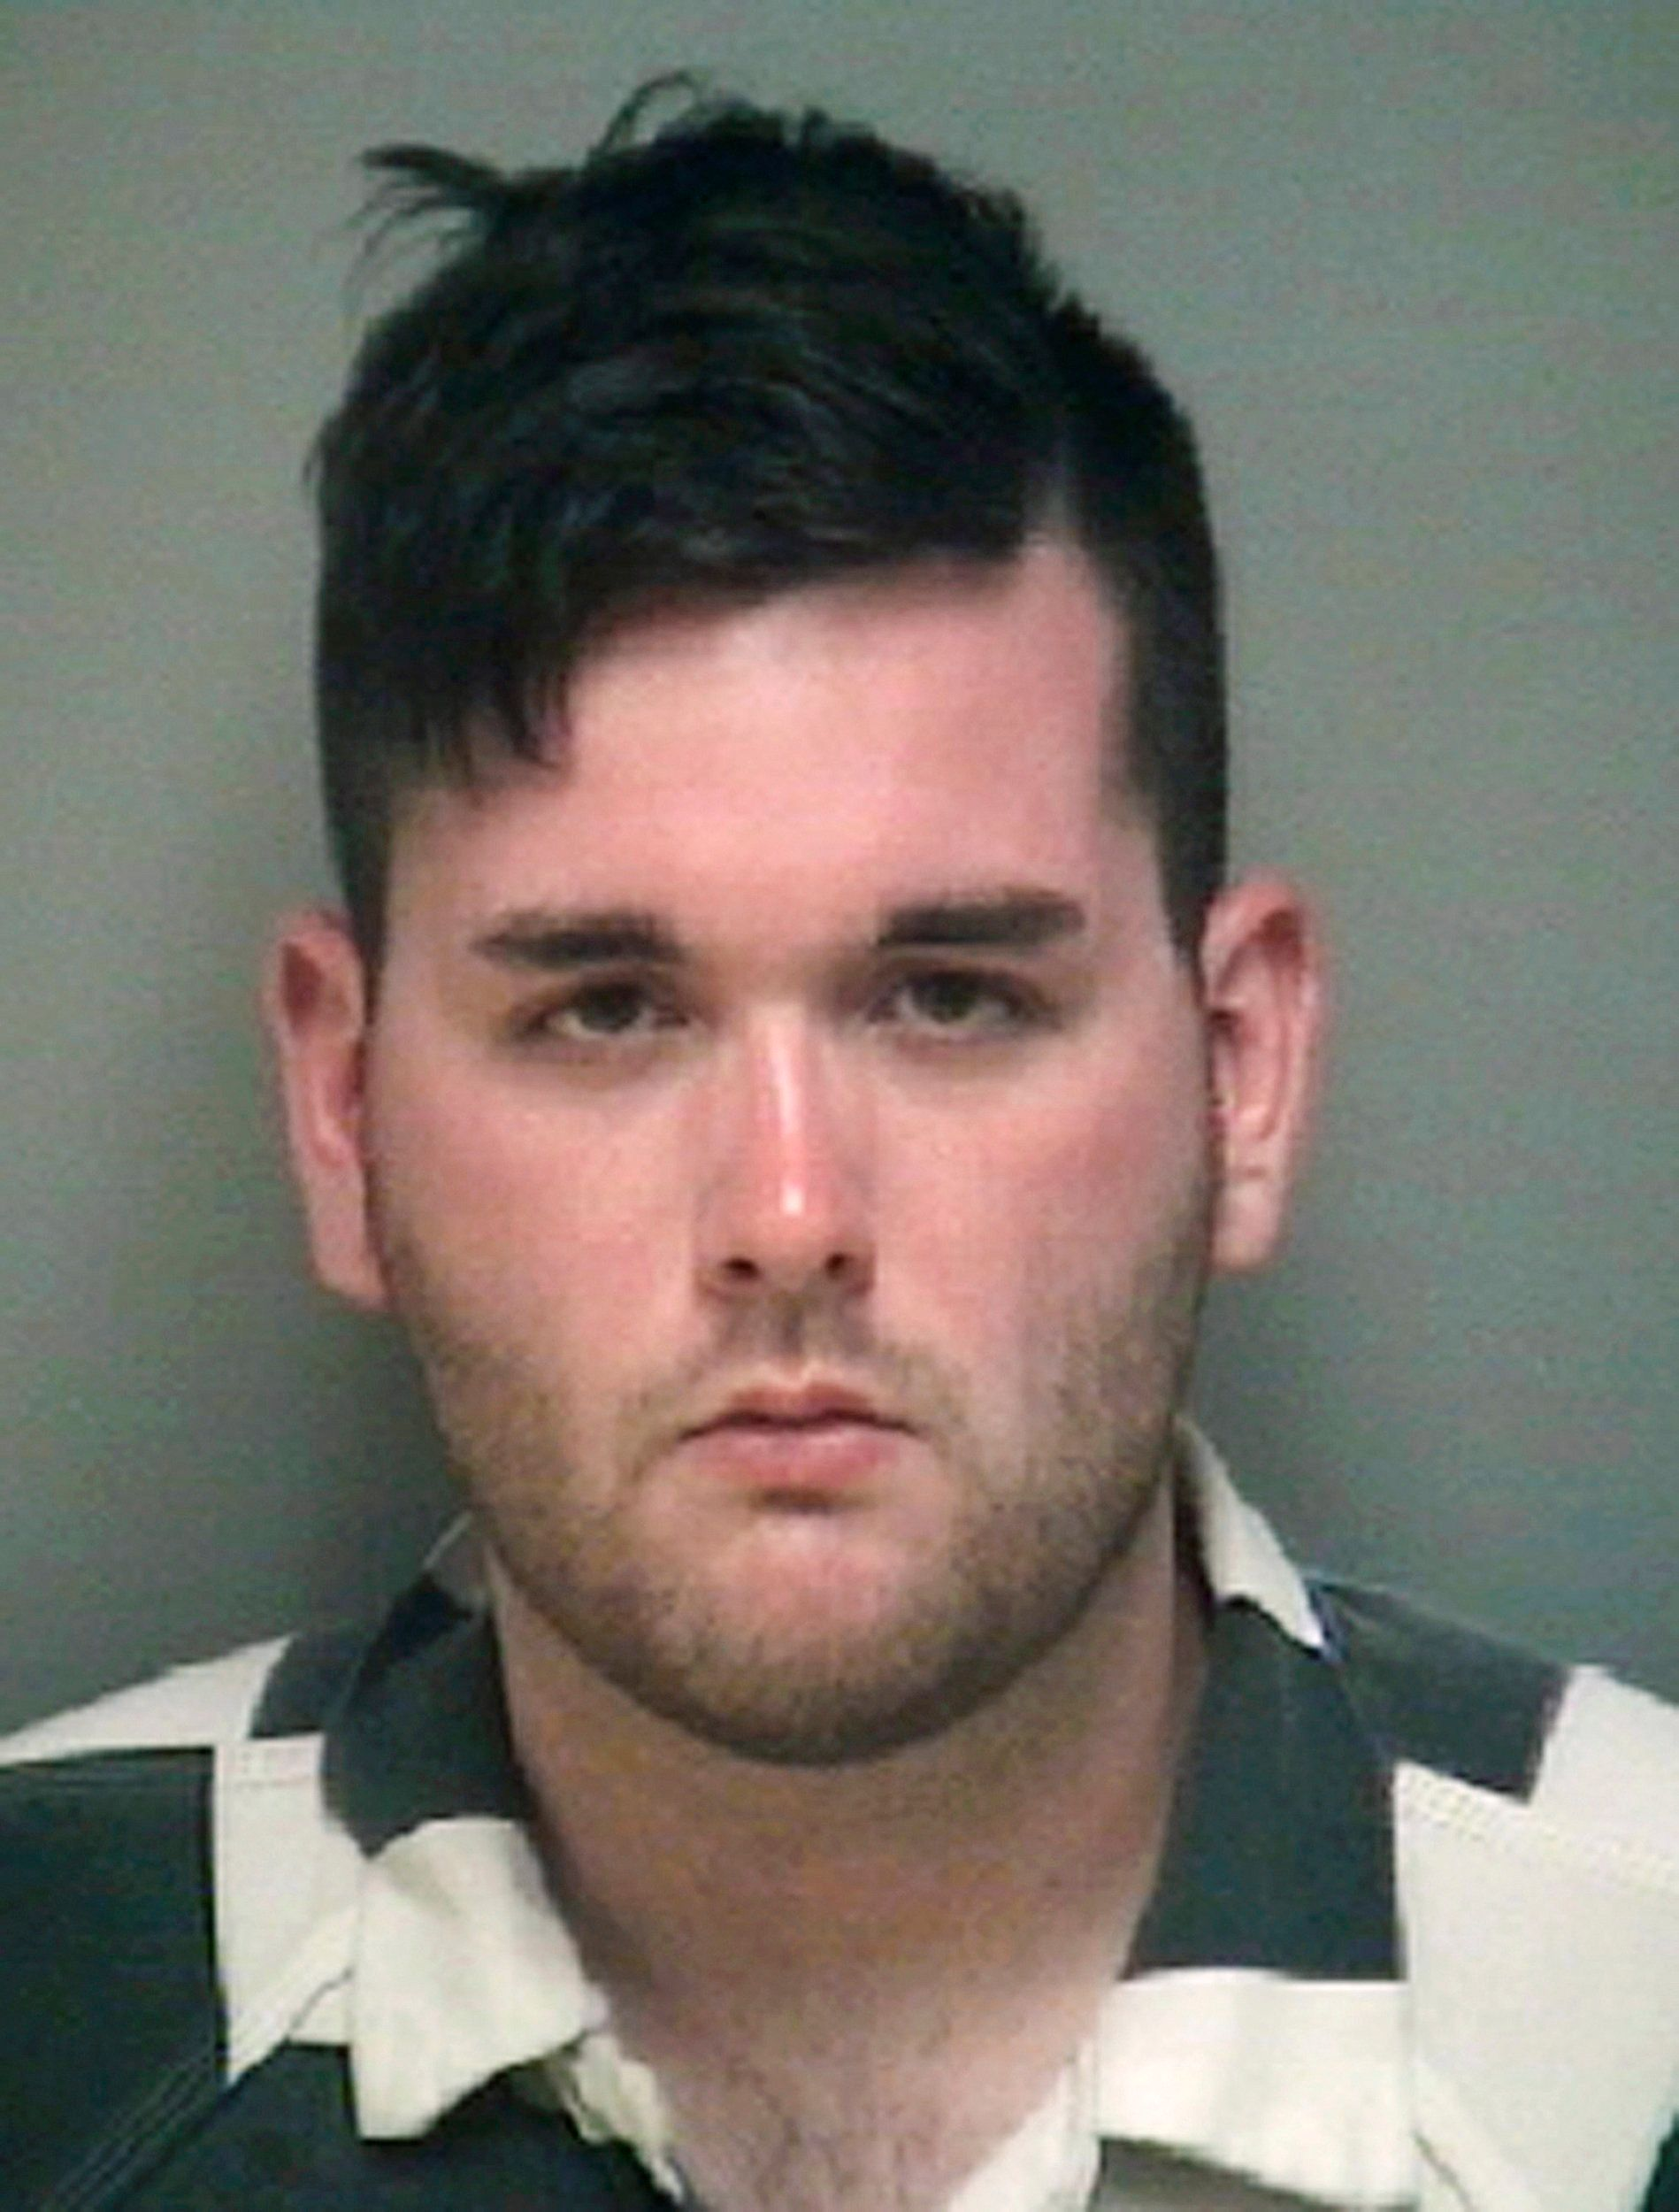 FILE - This undated file photo provided by the Albemarle-Charlottesville Regional Jail shows James Alex Fields Jr. Jurors in the trial of the man accused of killing a woman and injuring dozens at a white nationalist rally are expected to hear closing arguments in the case after testimony from final defense witnesses. Fields is charged with first-degree murder and other counts for driving his car into a crowd of counterprotesters in Charlottesville on Aug. 12, 2017. (Albemarle-Charlottesville Regional Jail via AP, File)